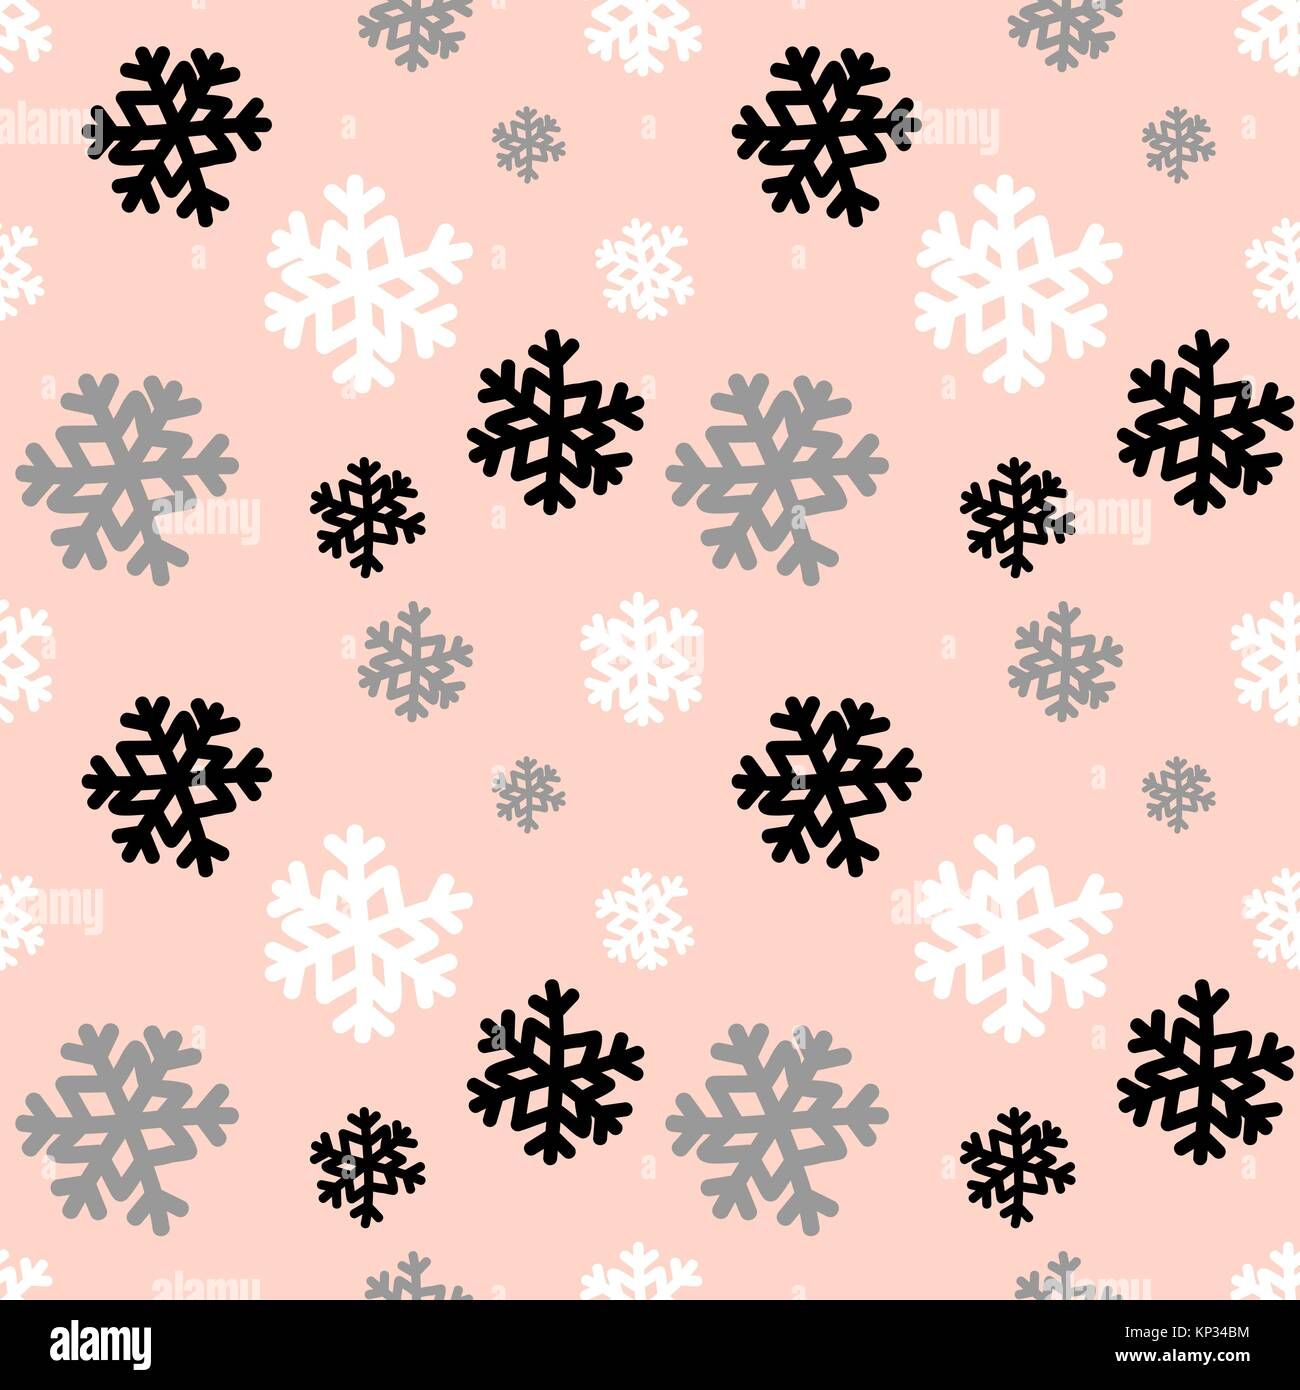 seamless repeating pattern with white gray and black snowflakes on KP34BM